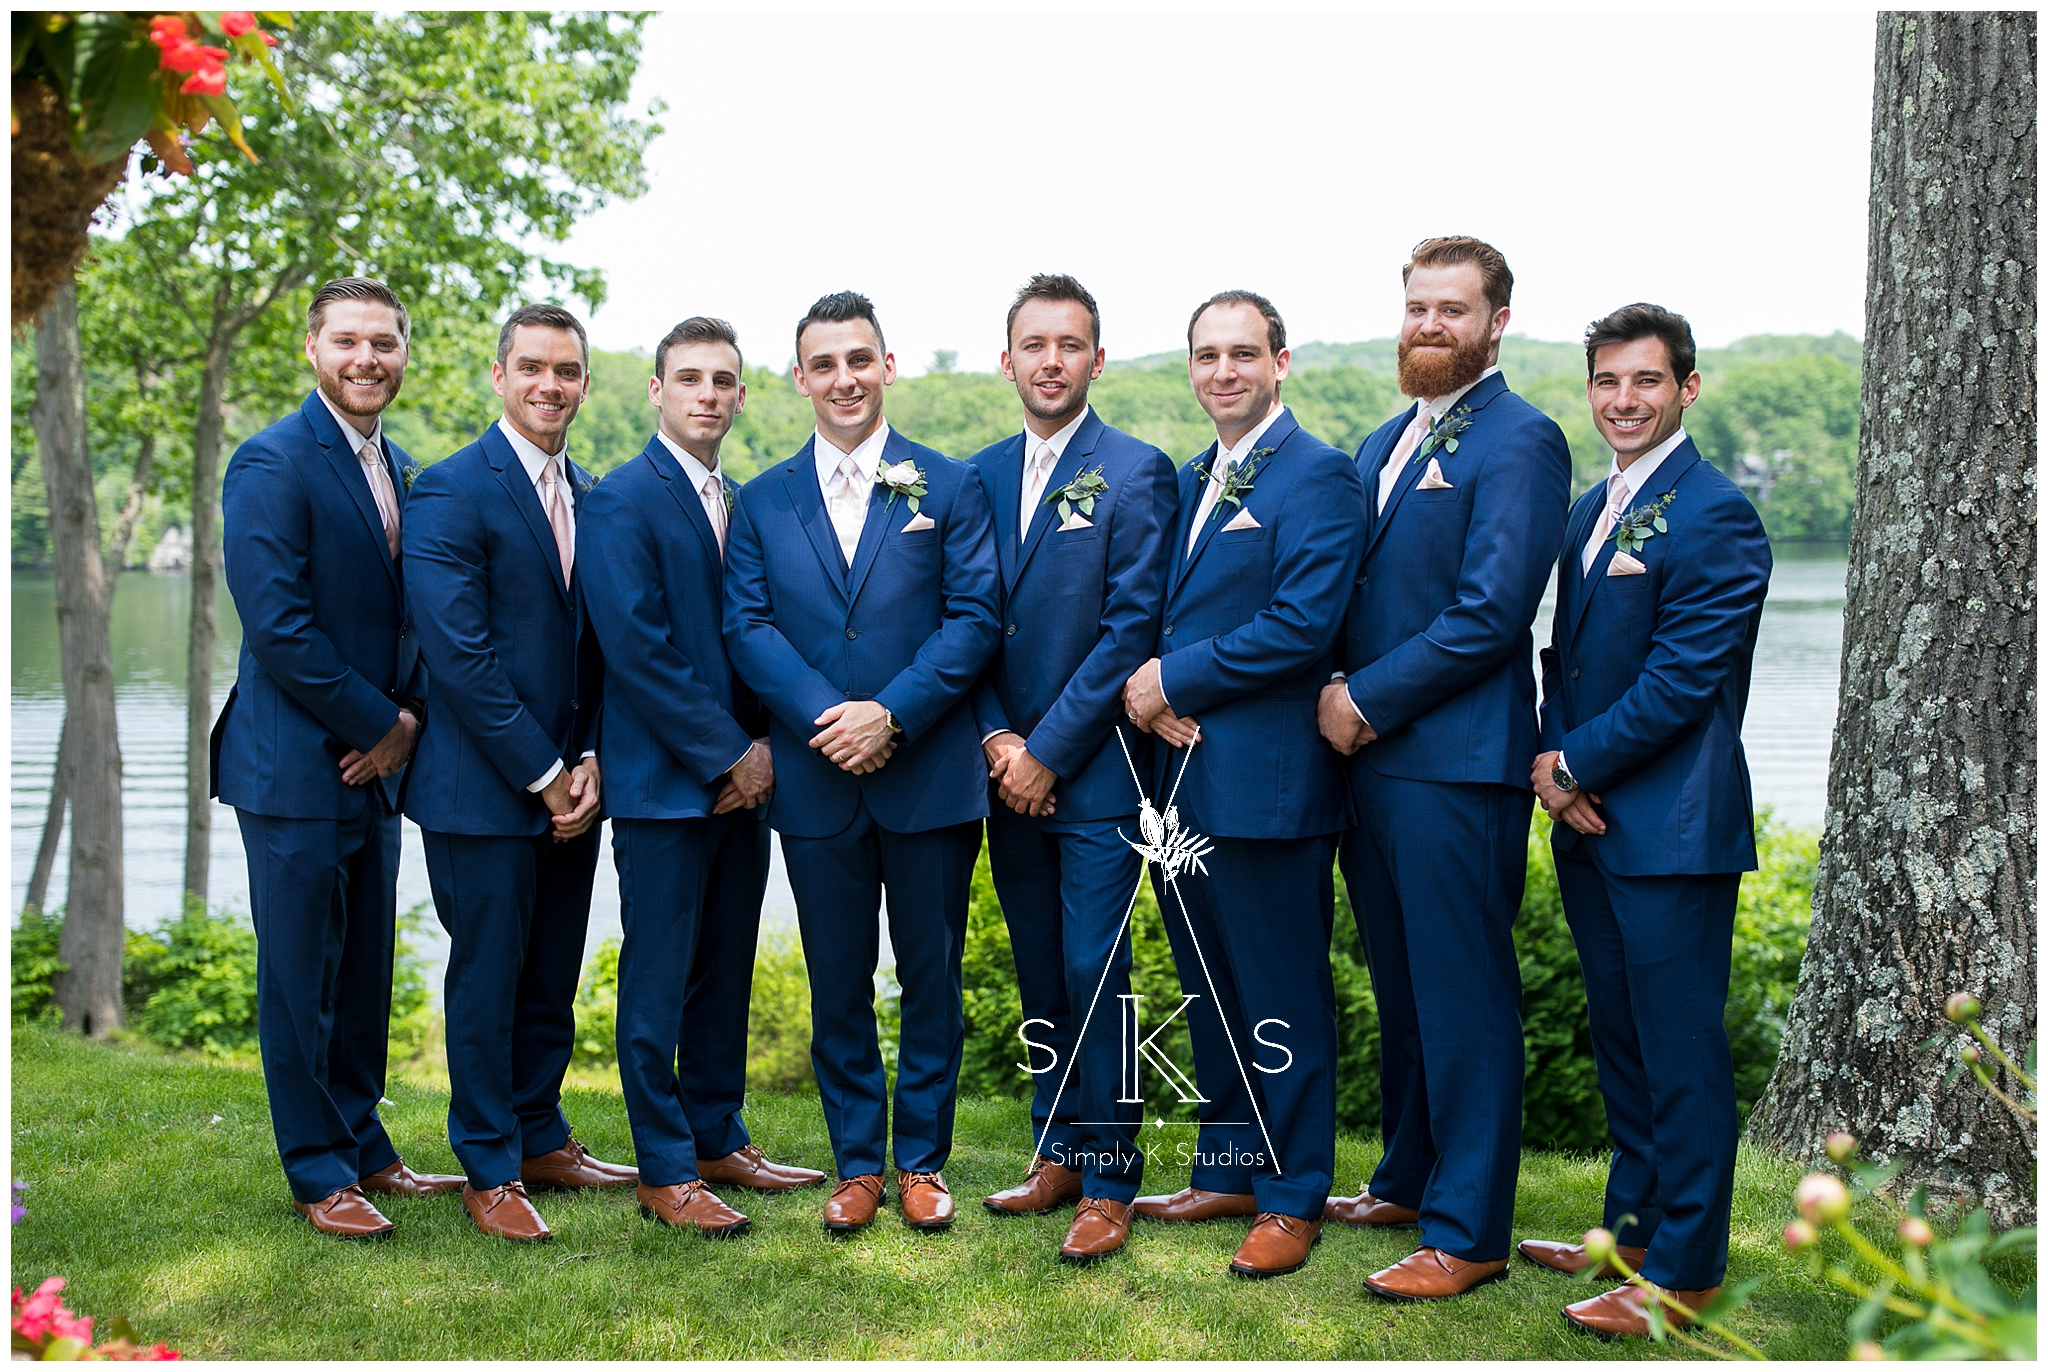 64 Groomsmen Suits.jpg